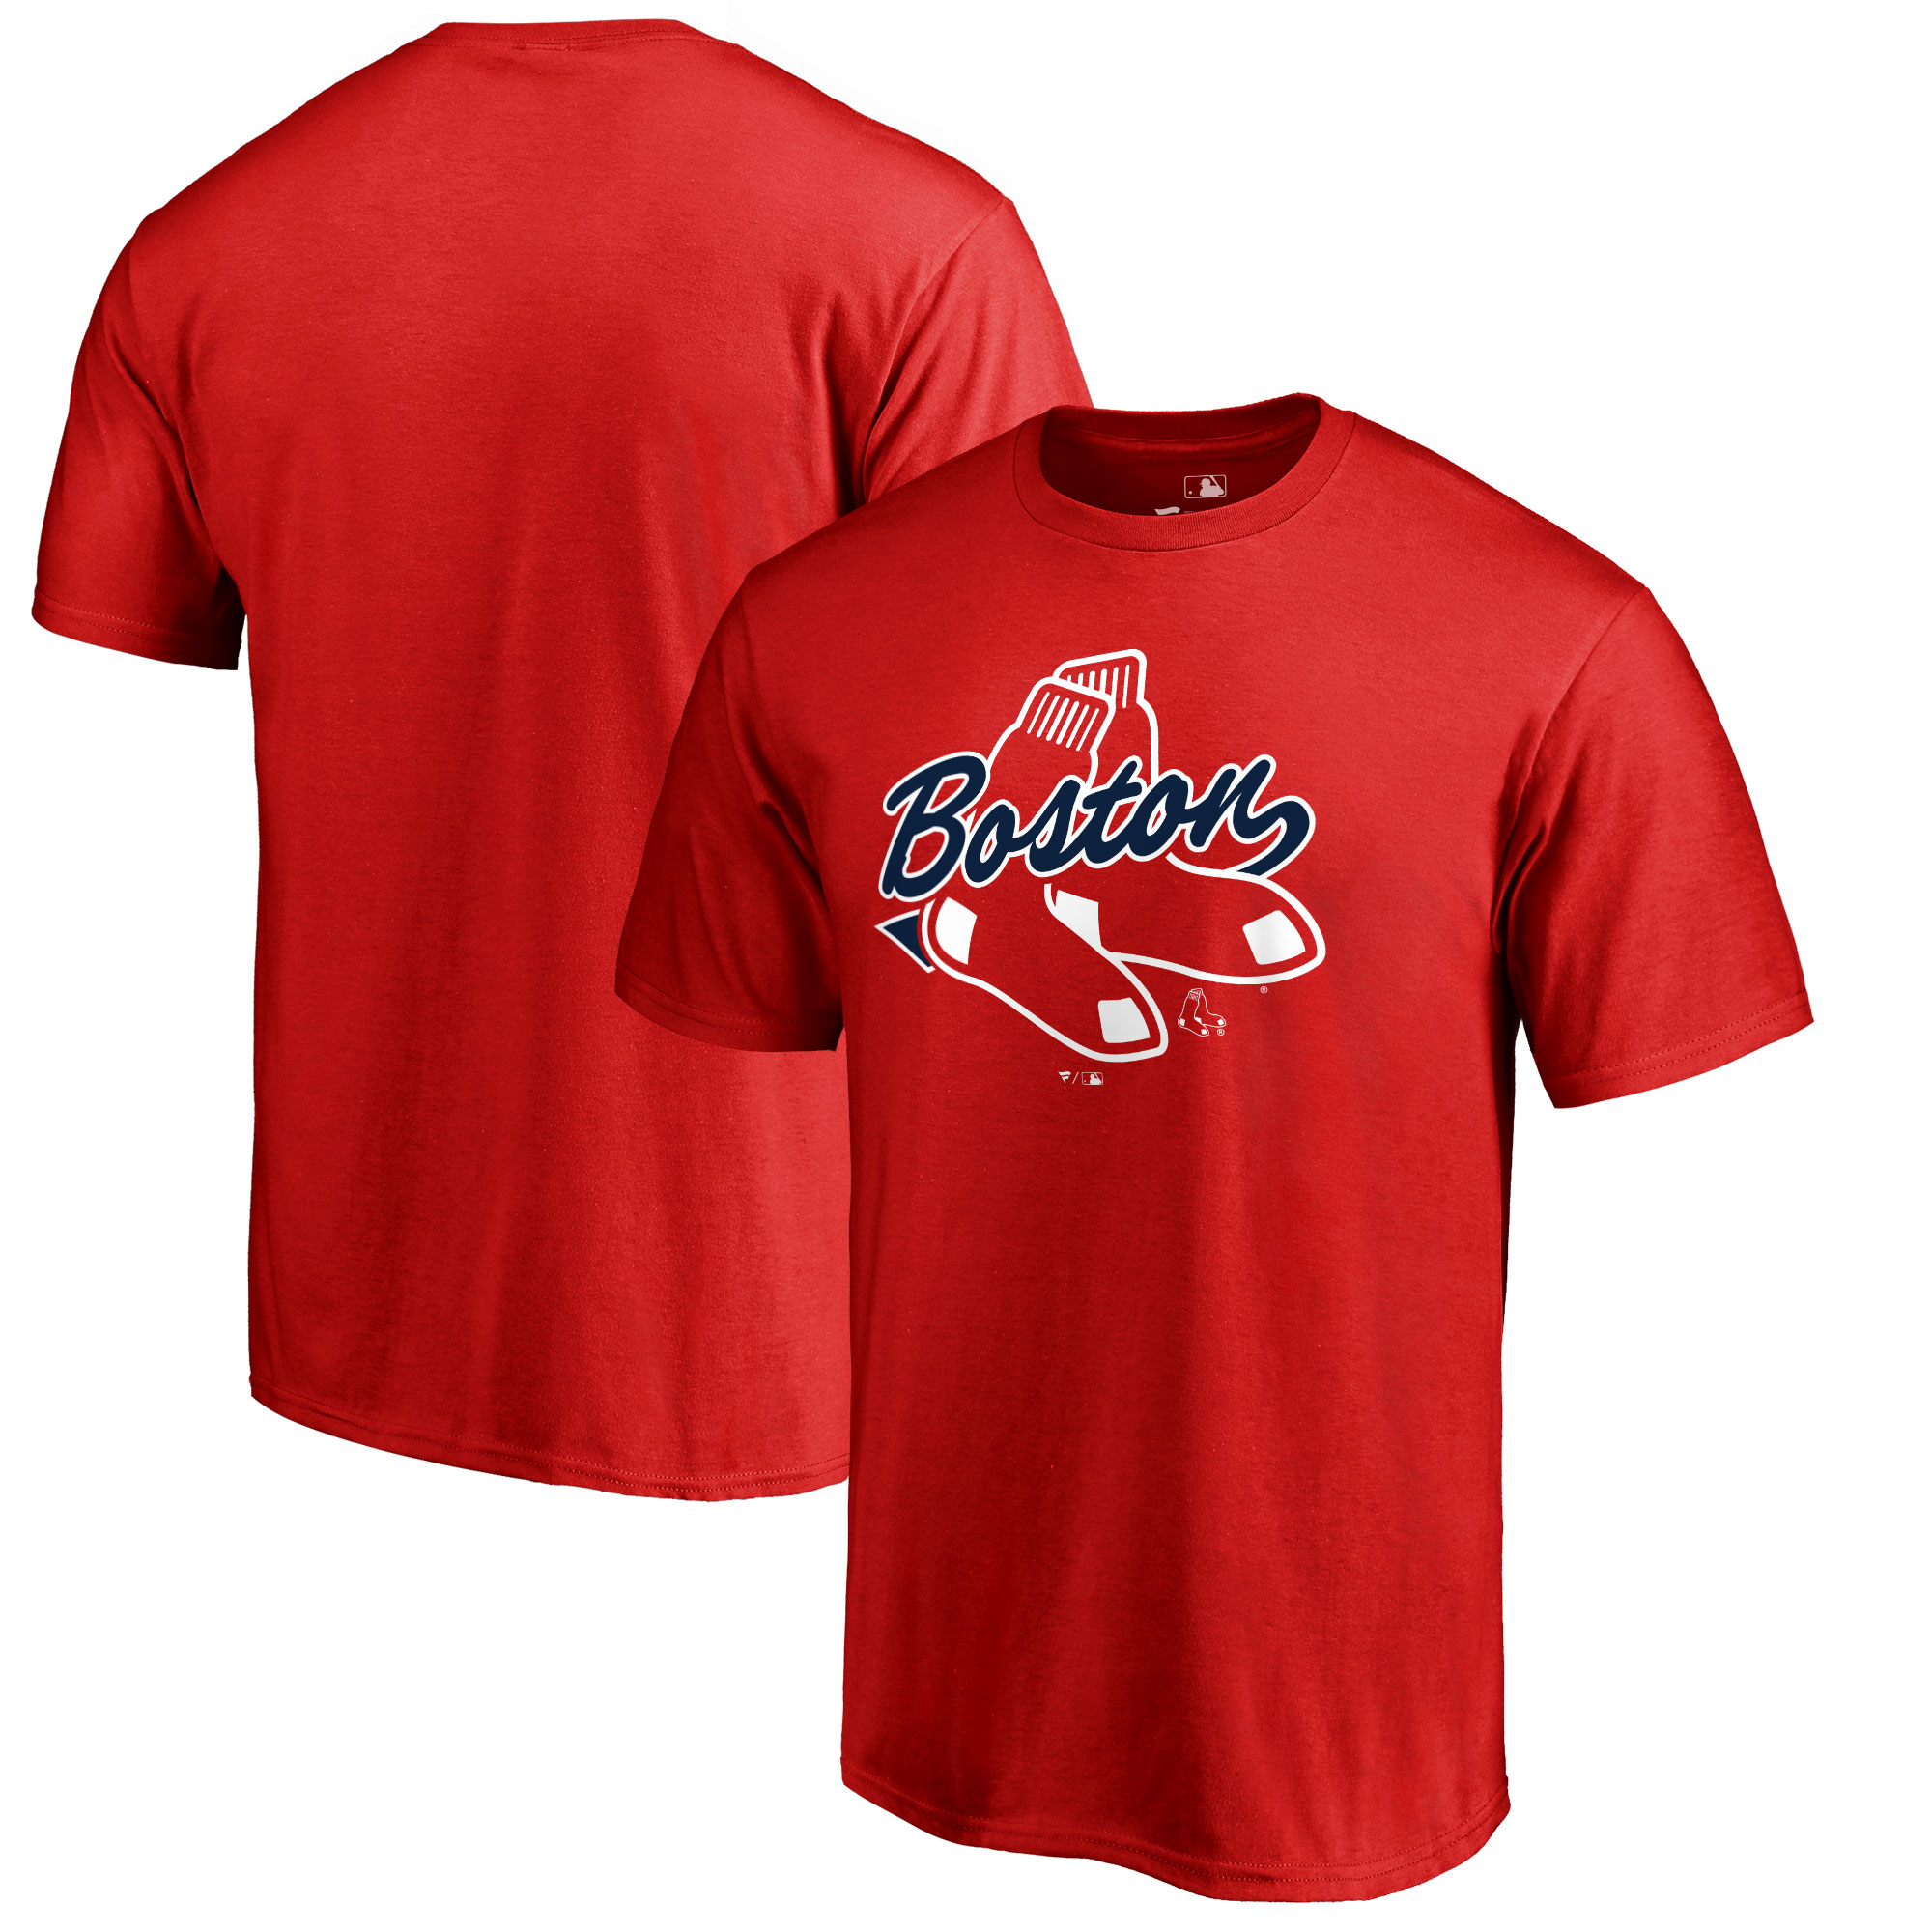 Boston Red Sox Fanatics Branded Big & Tall BoSox Hometown Collection T-Shirt - Red